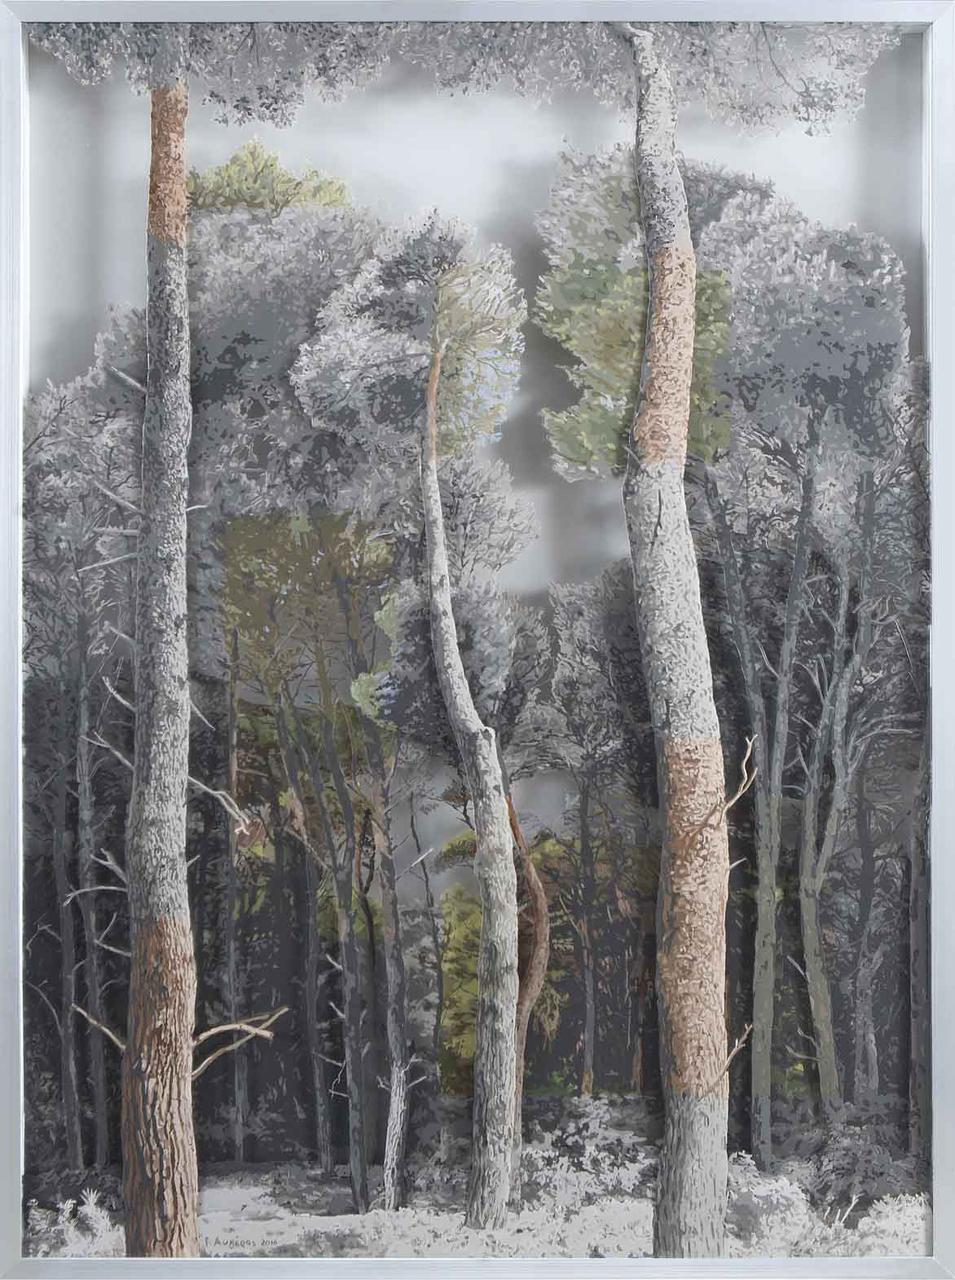 Forest 3, oil on transparent film, 86 x 117 cm, 2016